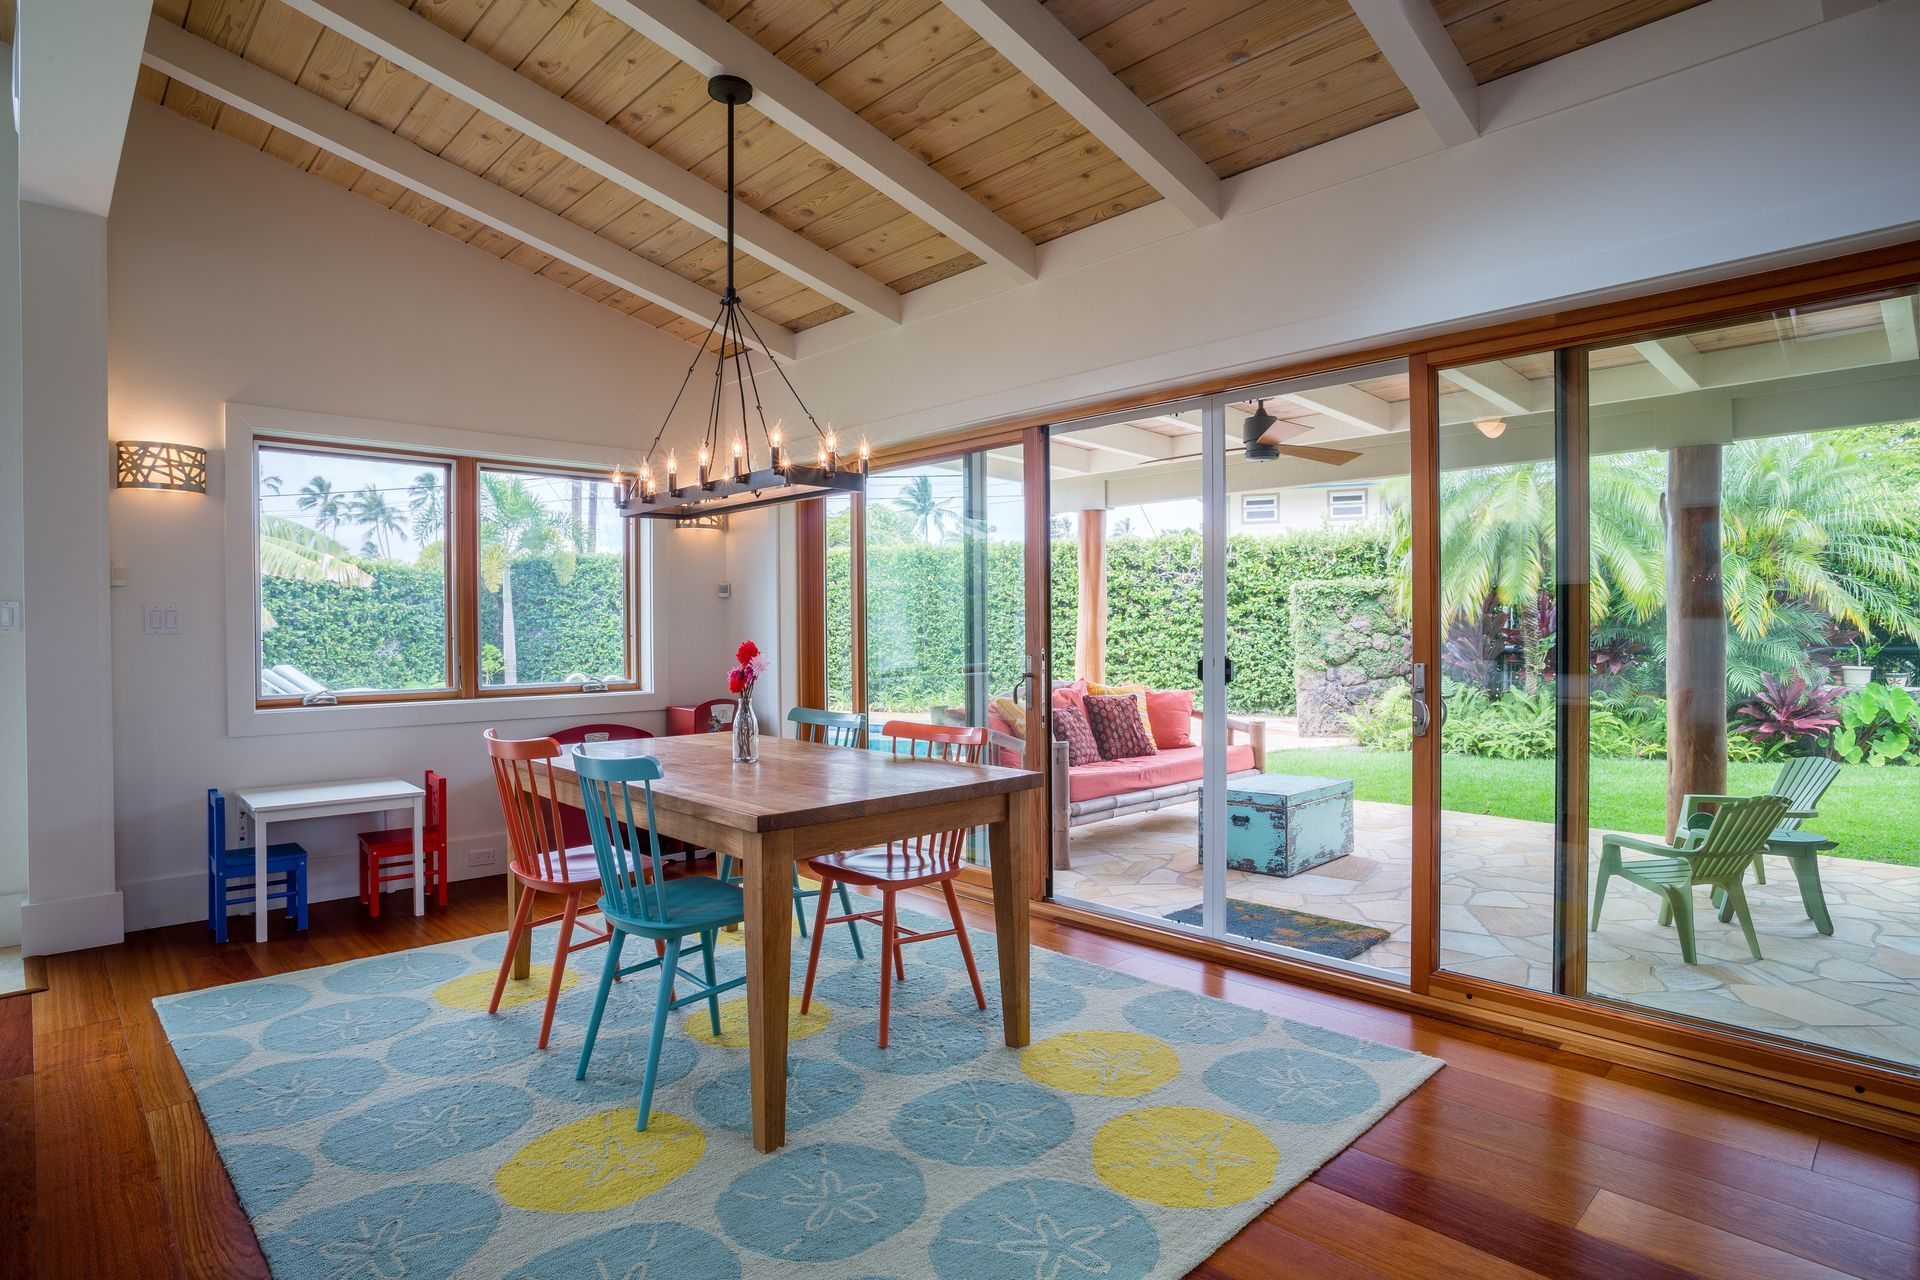 ATSA_TRIGG-SMITH_KAILUA-PLANTATION-MODERN_2014_11